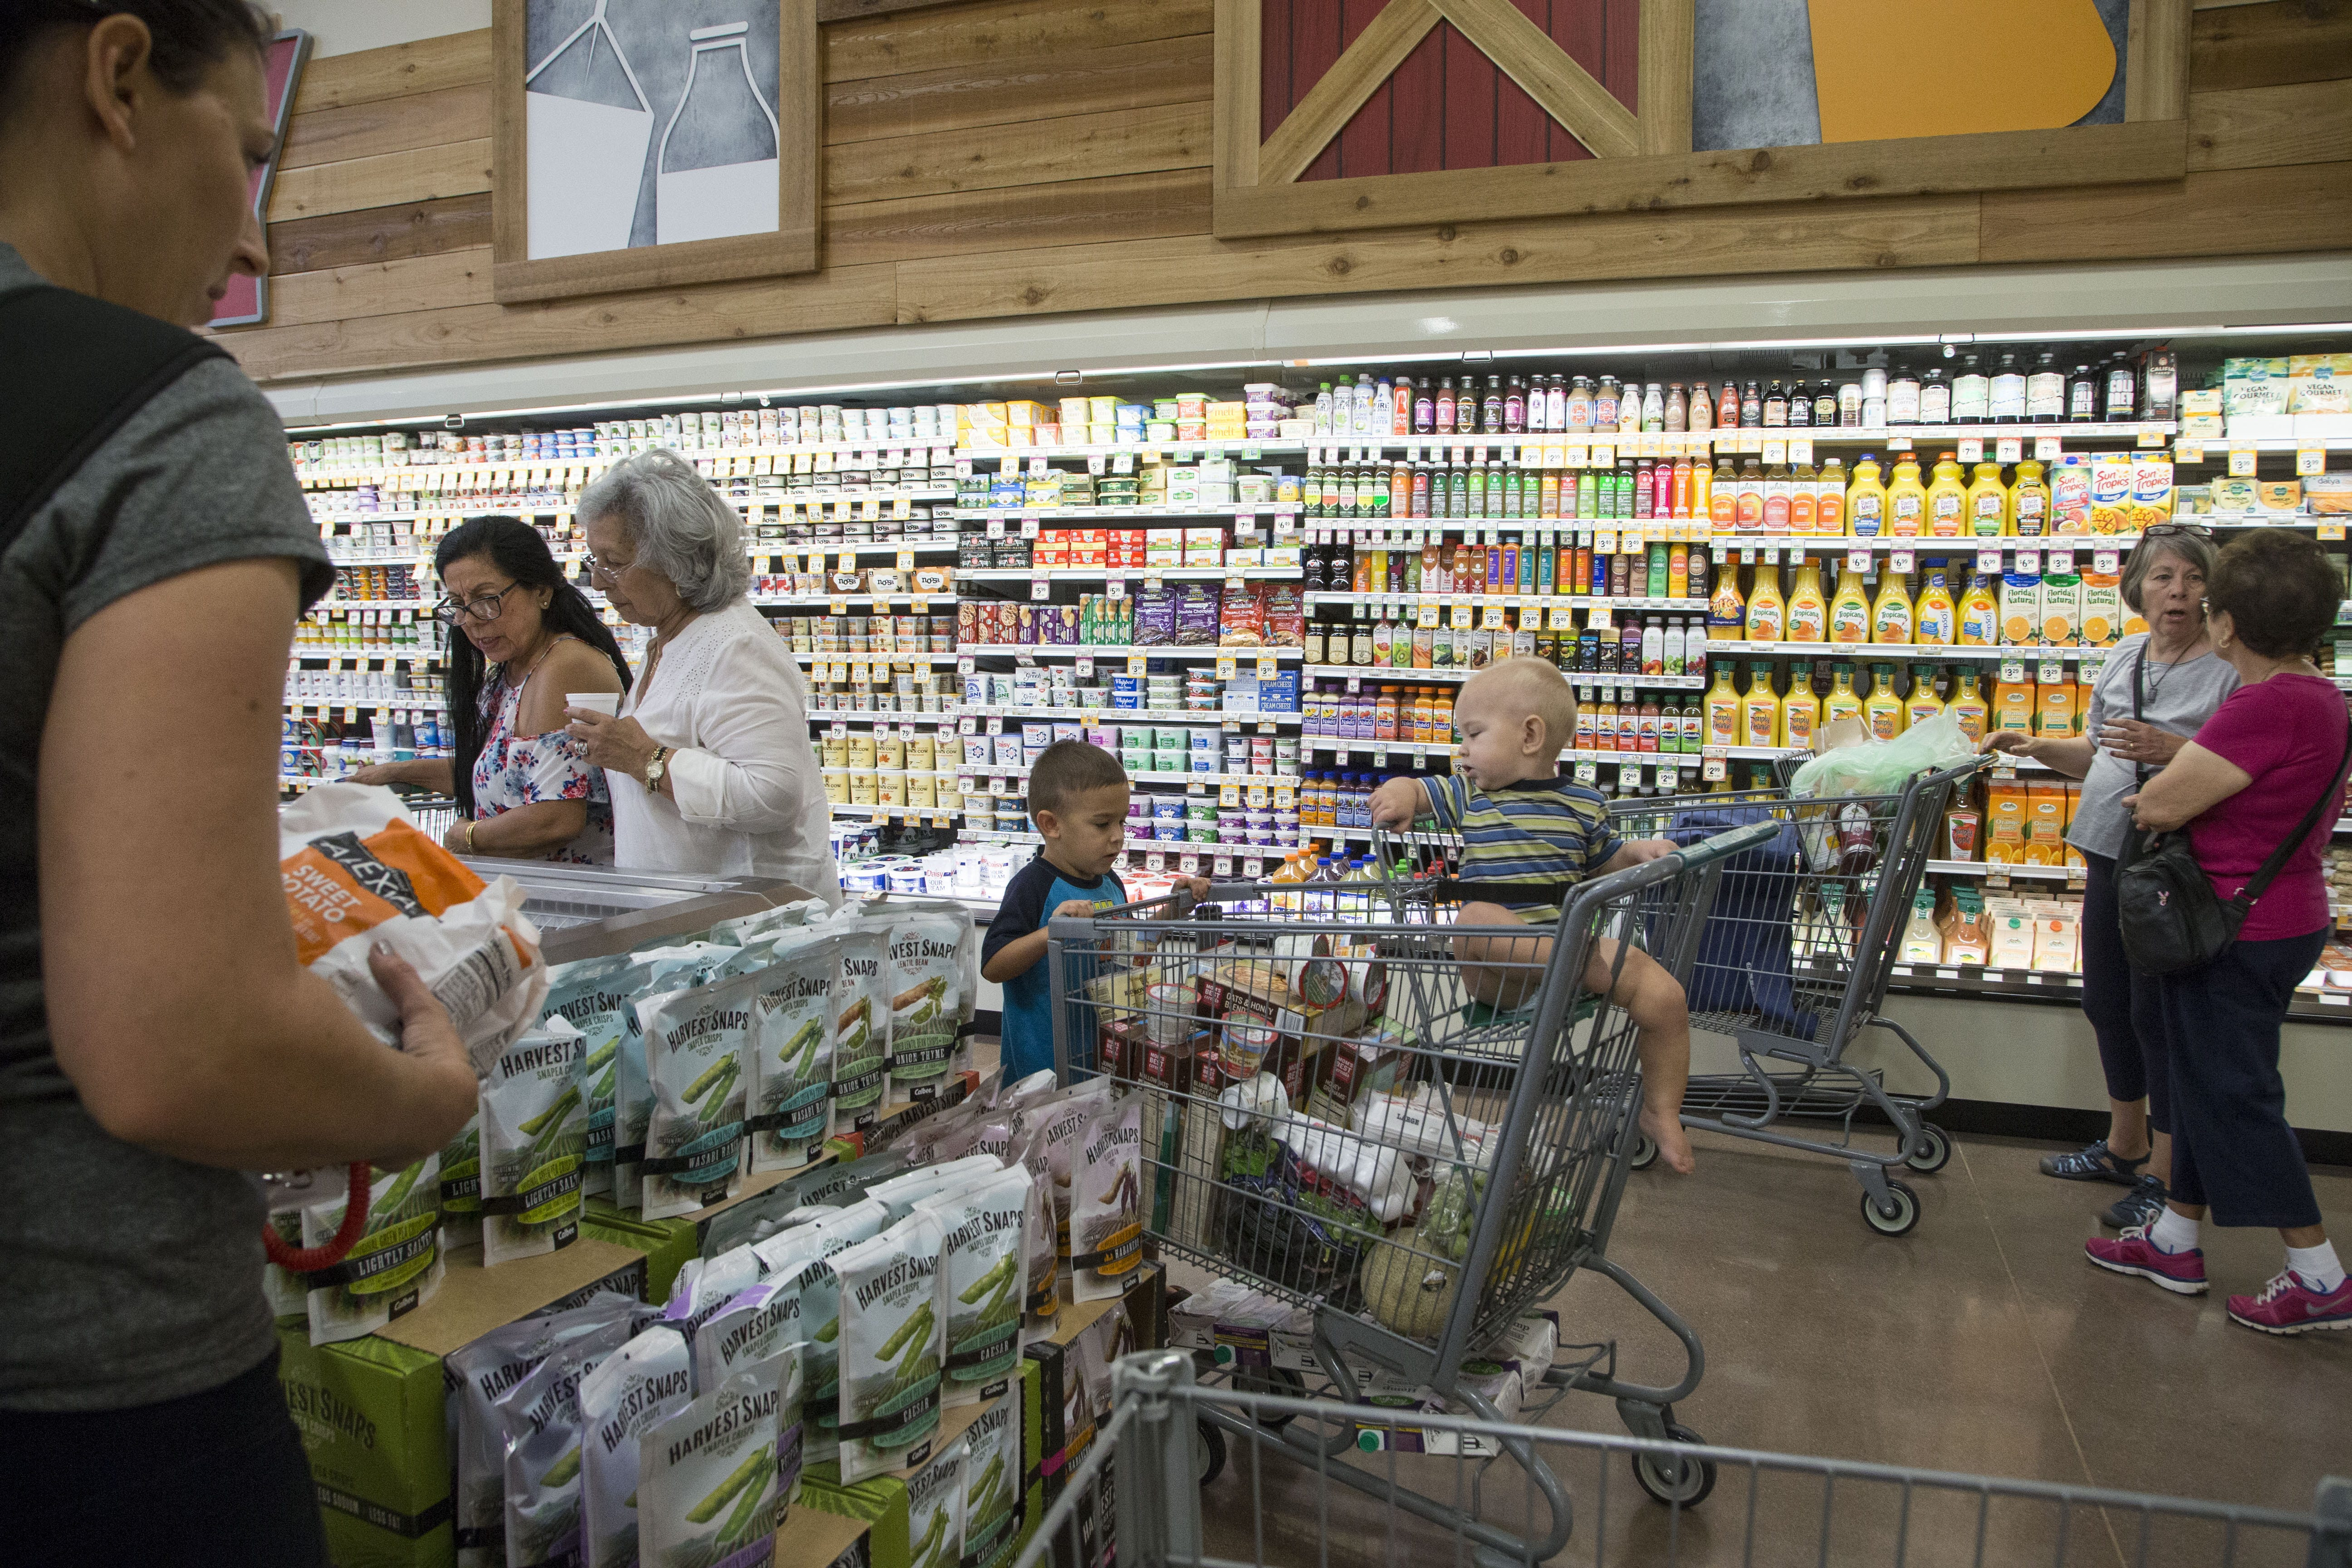 A new effort to ban taxes on groceries is debated  This one